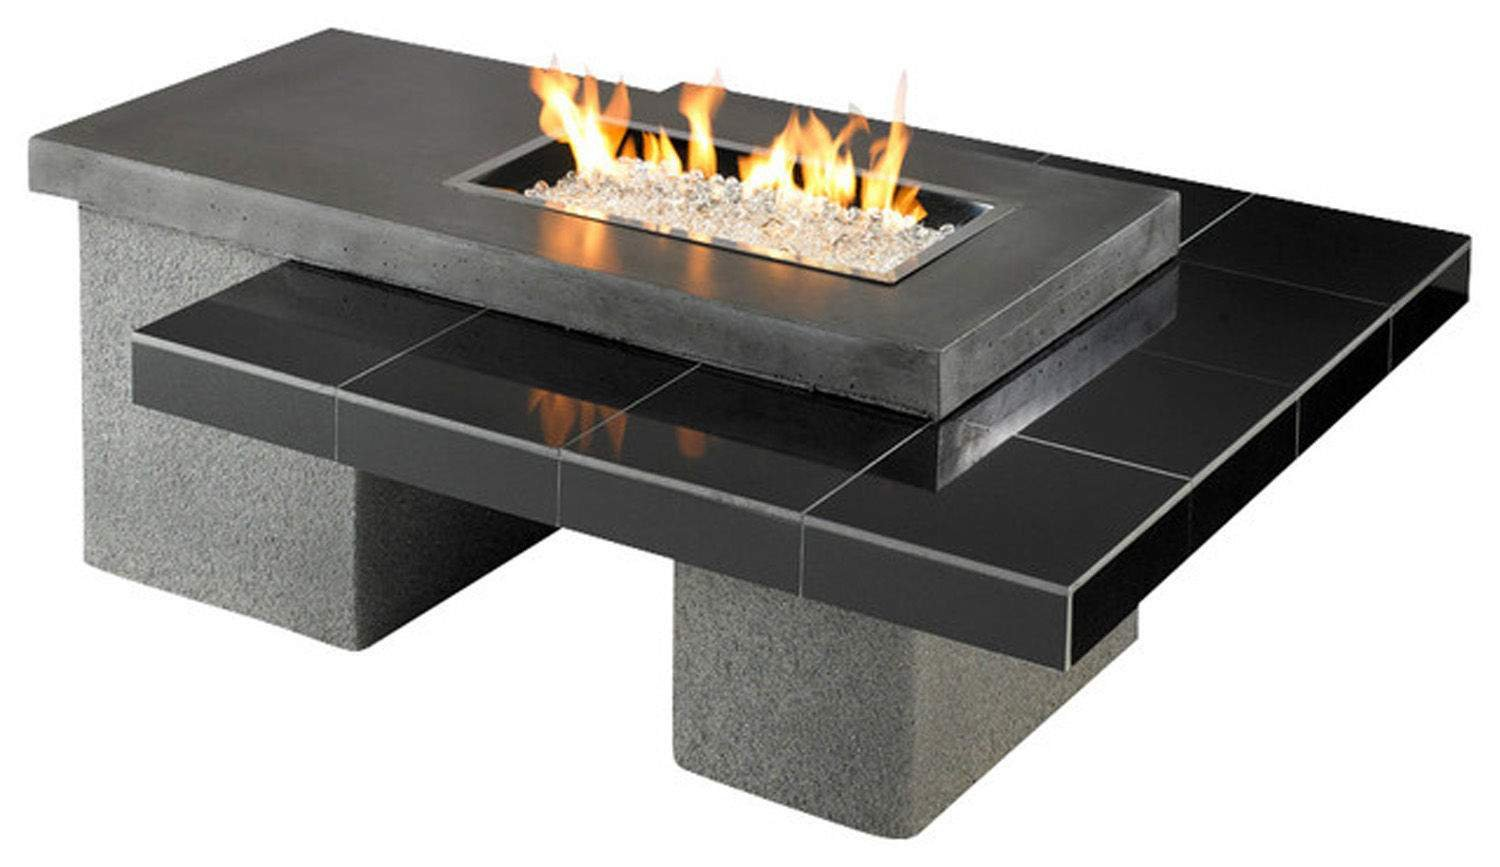 Outdoor GreatRoom Uptown Fire Pit - 60k BTUs by The Outdoor GreatRoom Company